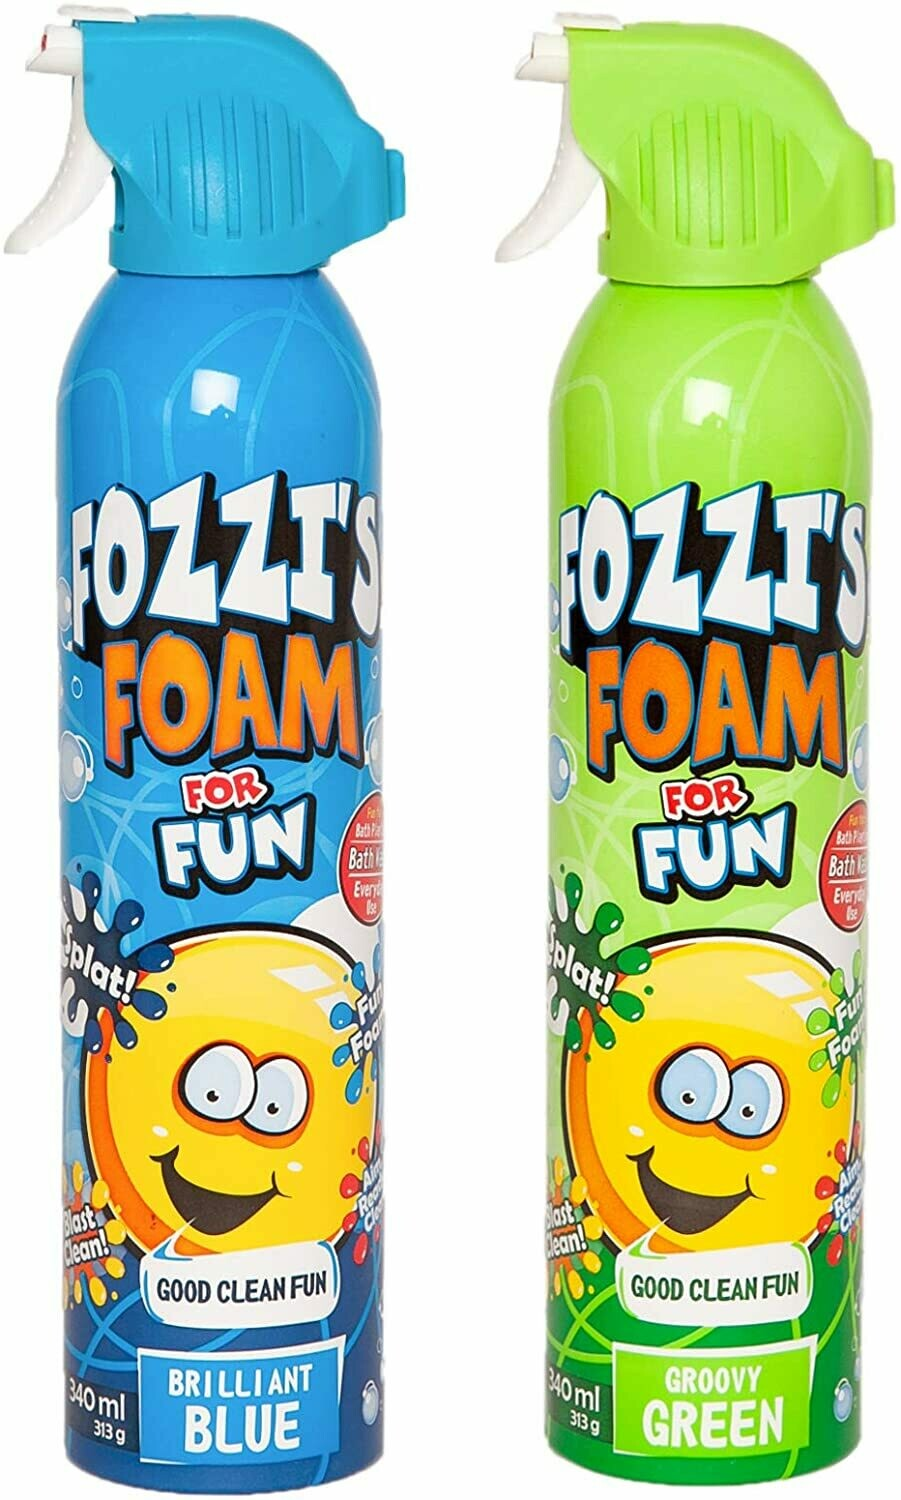 FOZZI's Bath Foam Aerosol for Kids, Brilliant Blue and Groovy Green, Good Fozzi Fun, 11.04 ounces (313g) Each (Pack of 2) (Free Shipping)